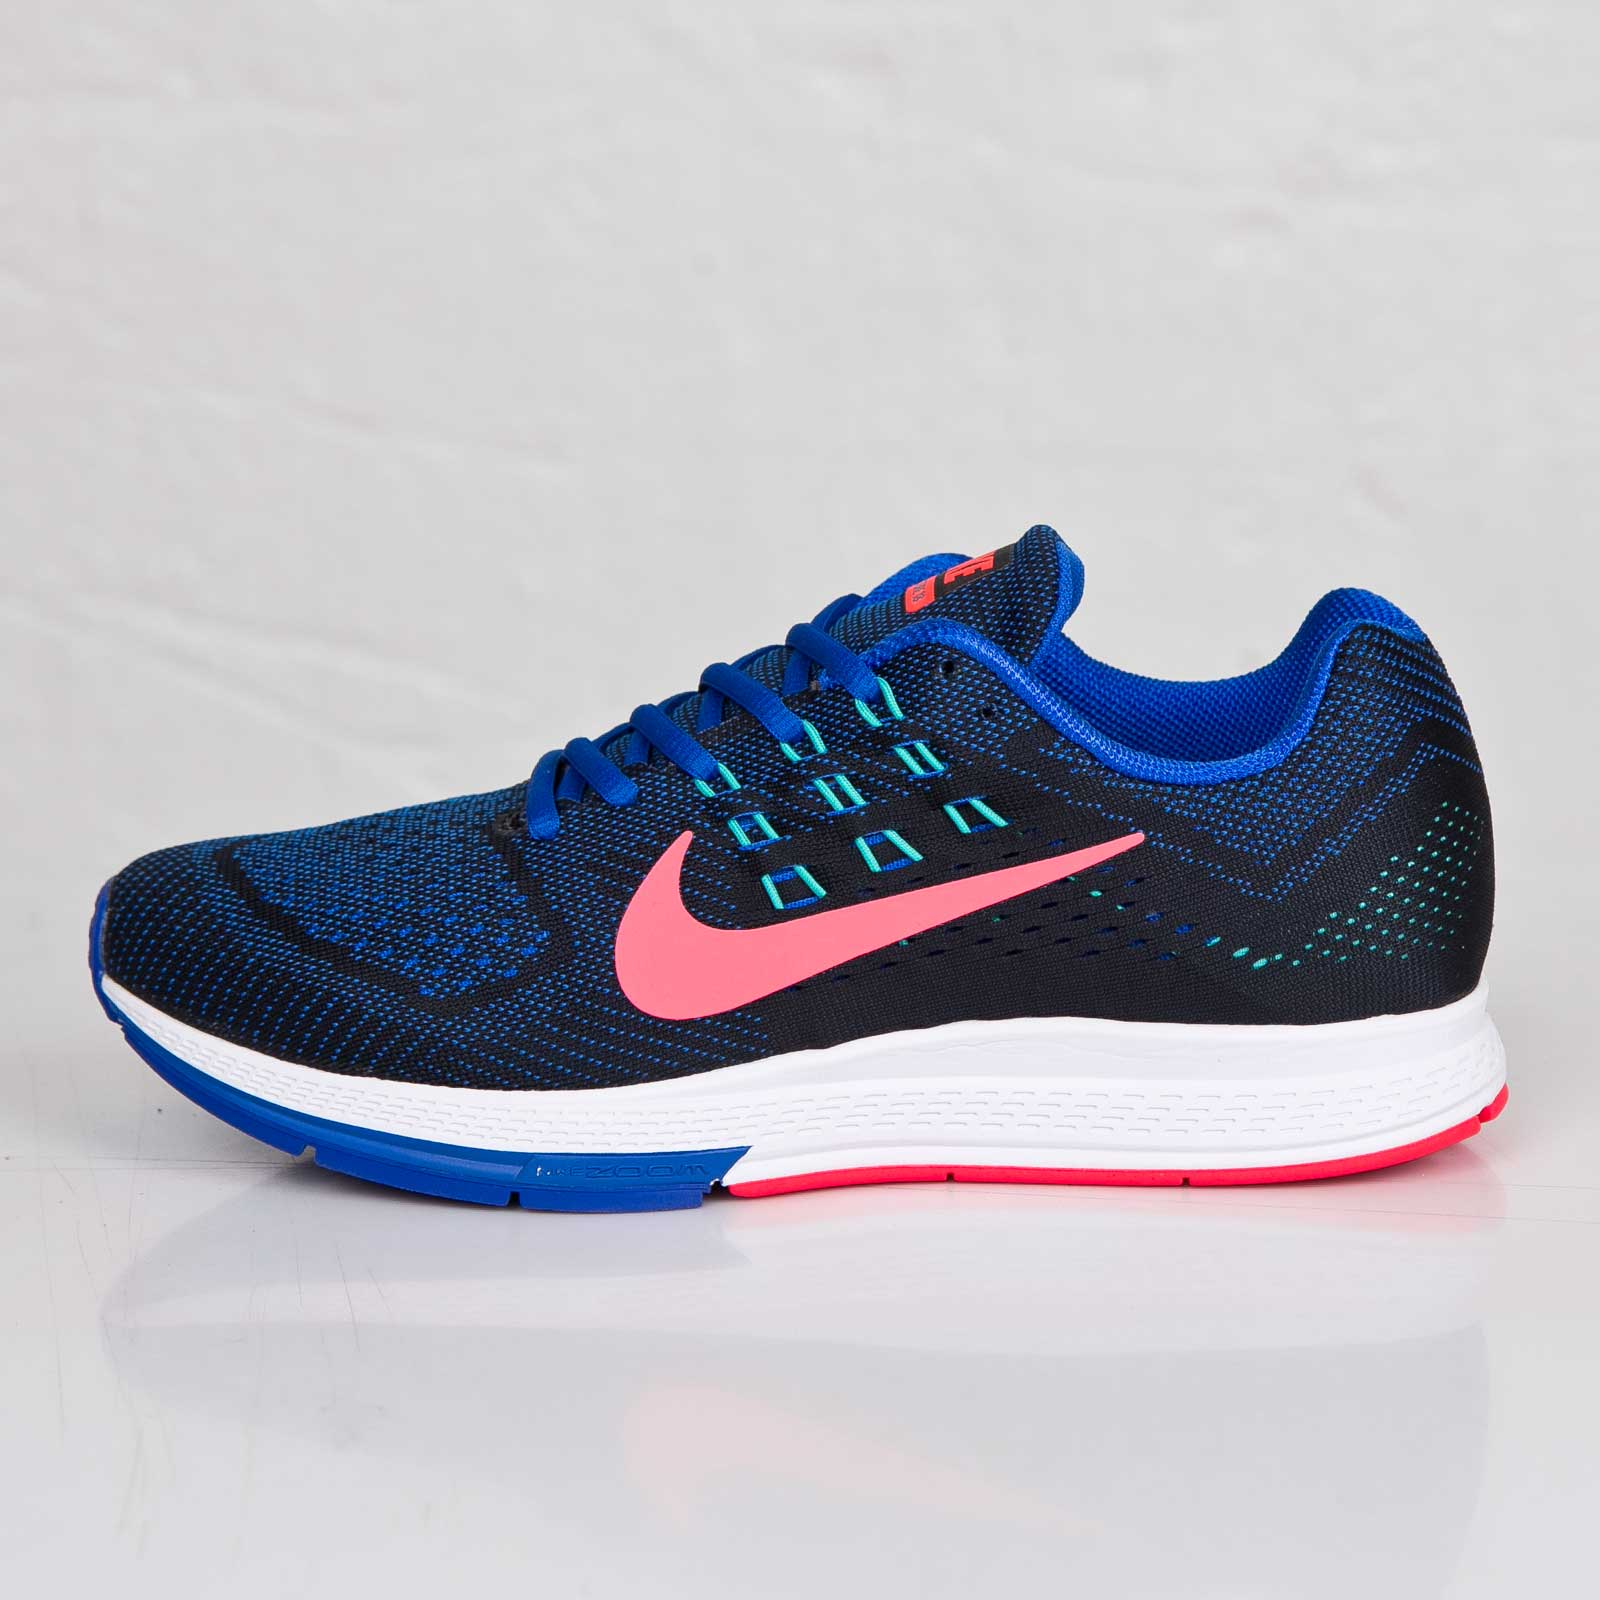 6cfc63964ae12 Nike Air Zoom Structure 18 - 683731-400 - Sneakersnstuff